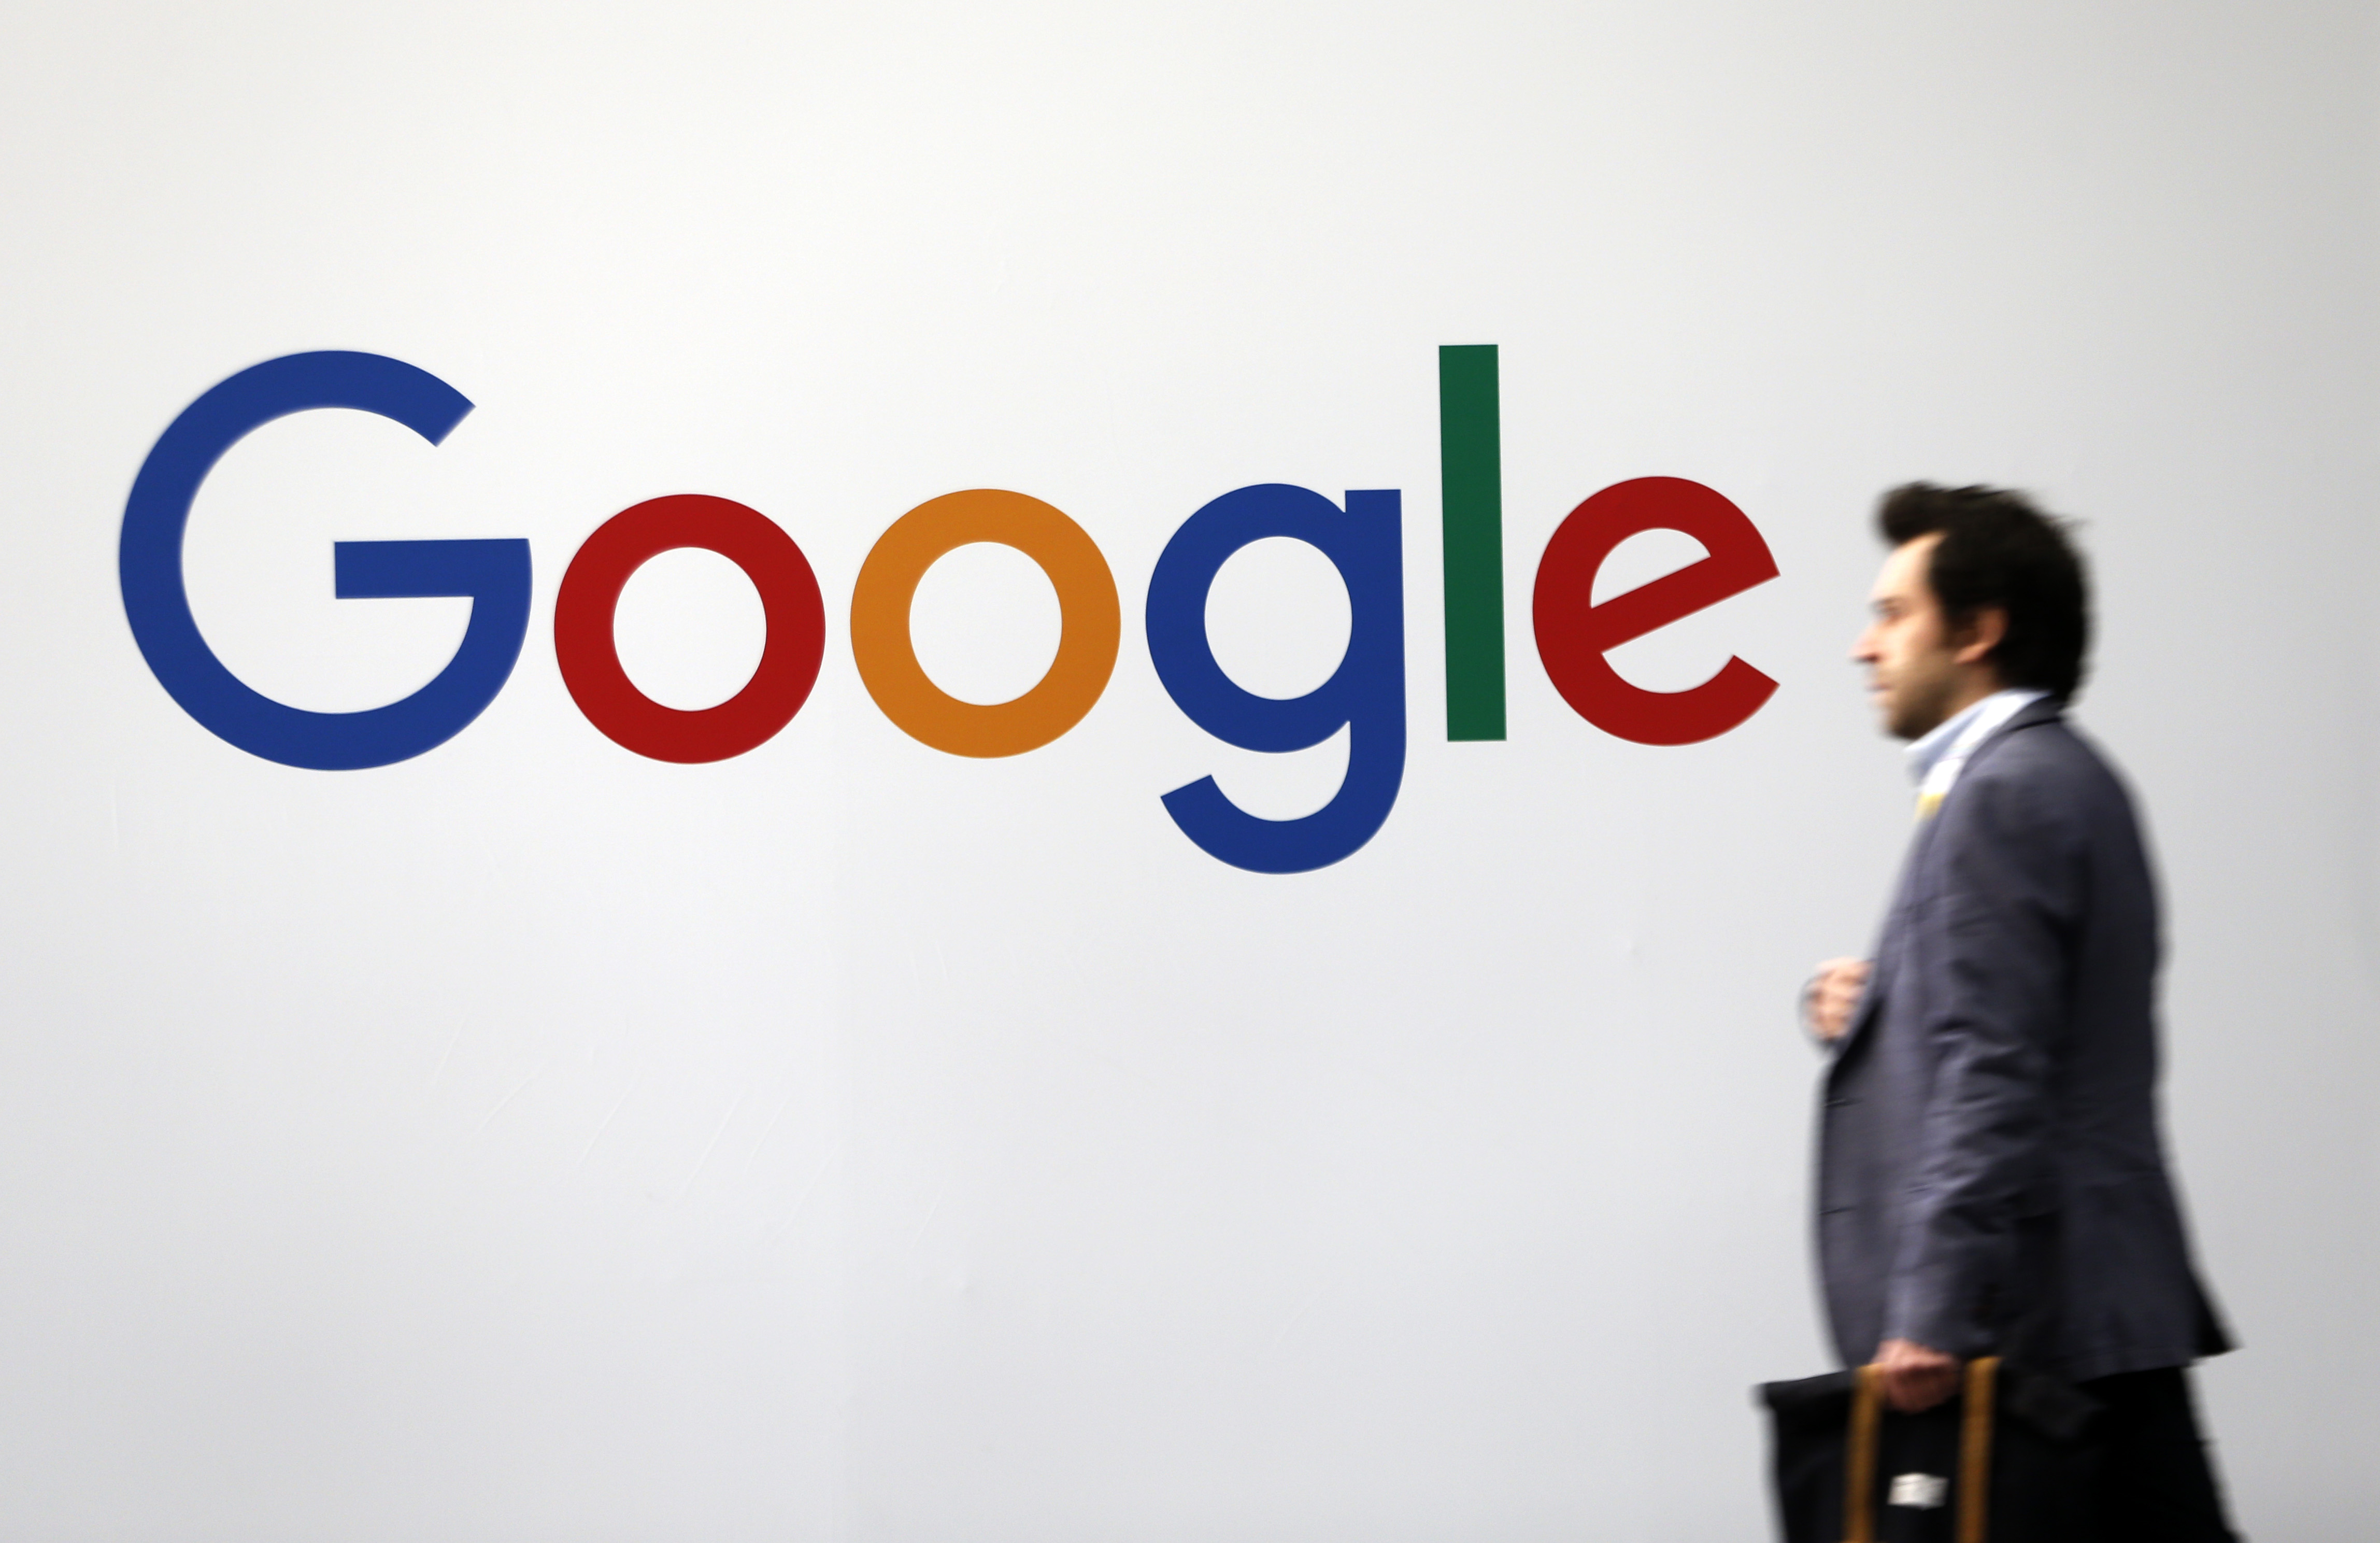 Google is setting stricter rules about what can and can't be spoken about at work.